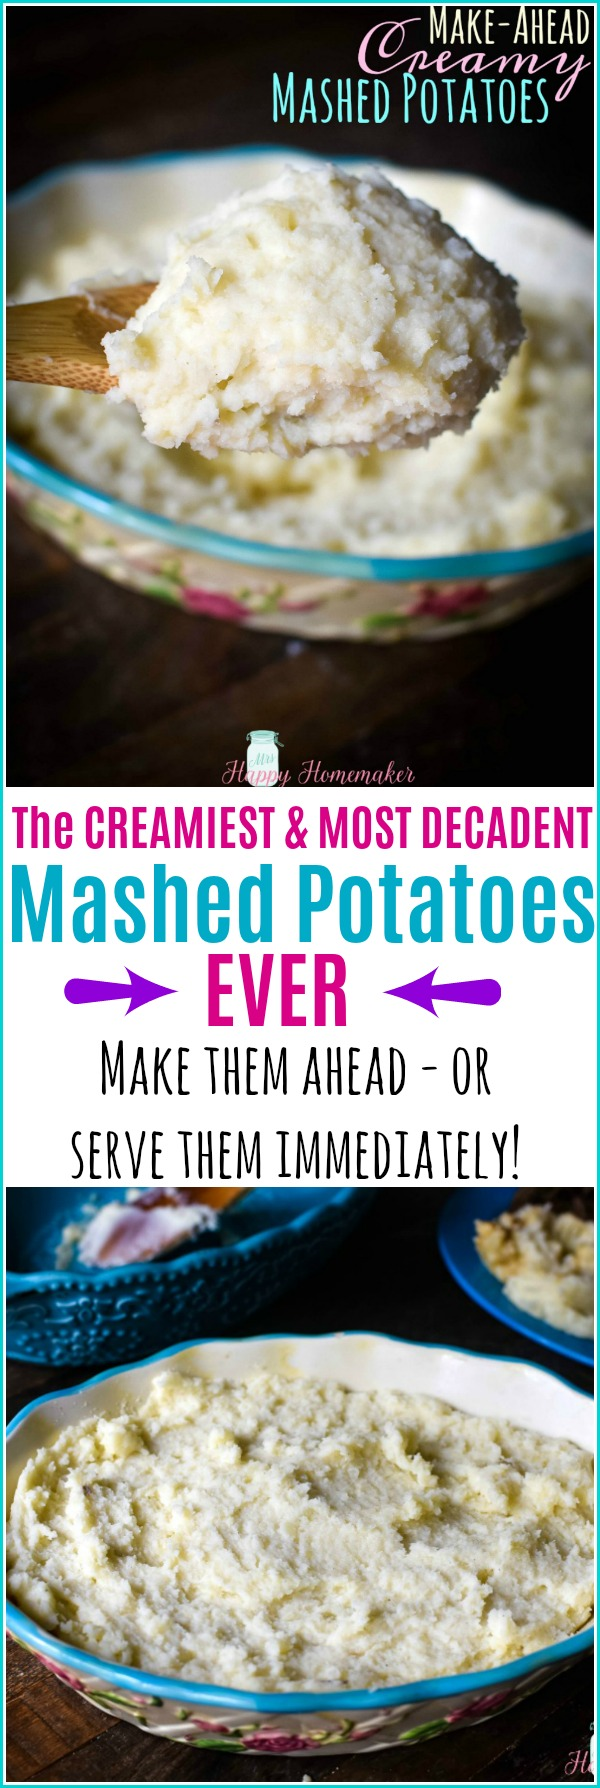 These Make-Ahead Creamy Mashed Potatoes don't have to be made ahead if you don't want to. They are the richest, most delicious, & most decadent mashed potato I've ever had. EVER. | MrsHappyHomemaker.com @thathousewife